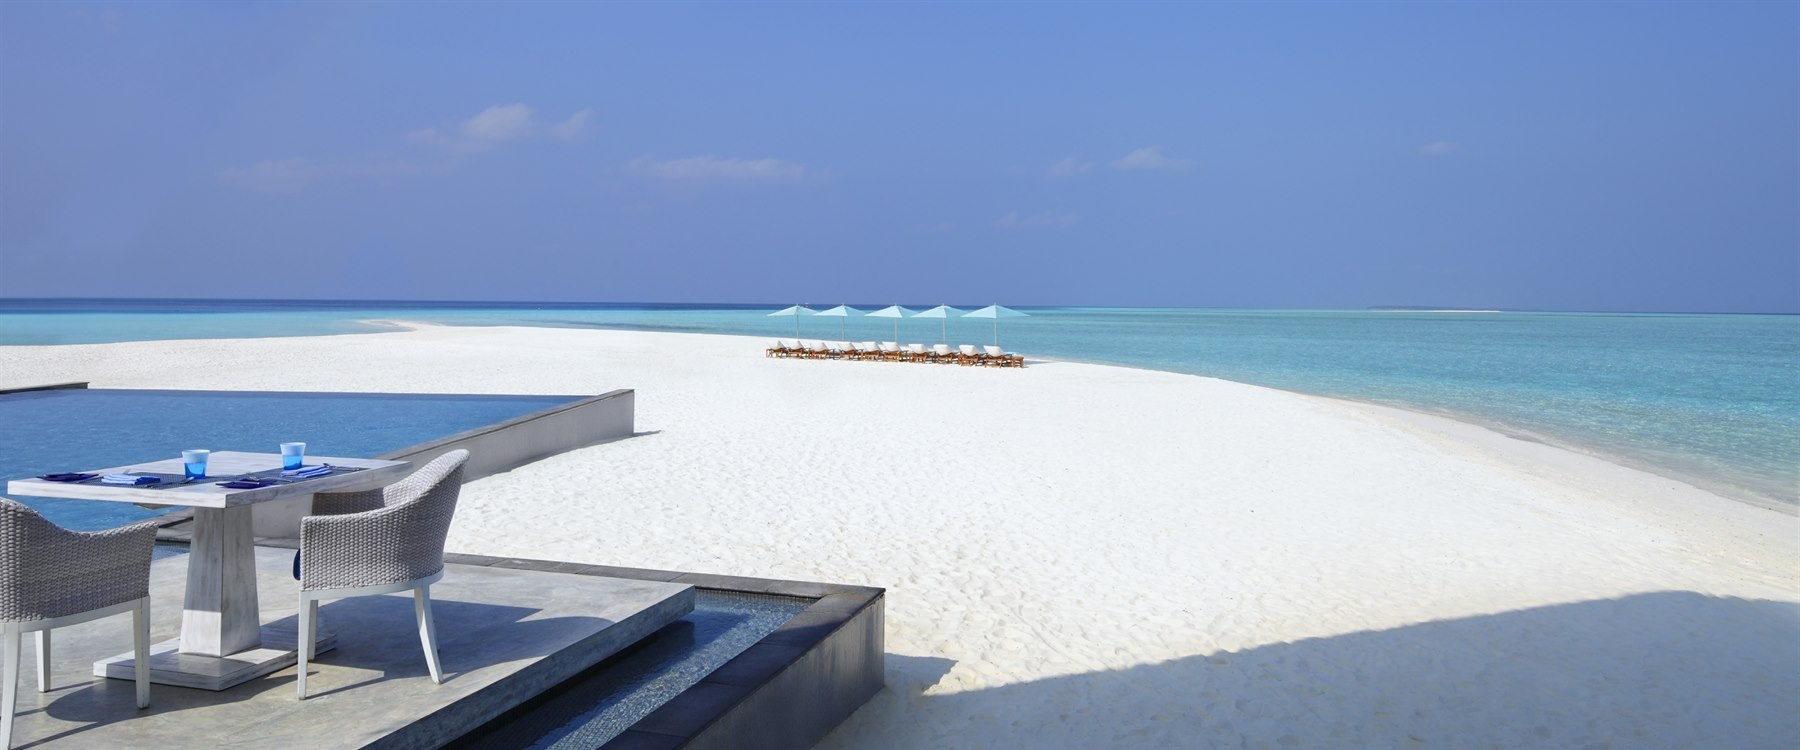 Beachfront at Four Seasons Resort Maldives at Landaa Giraavaru